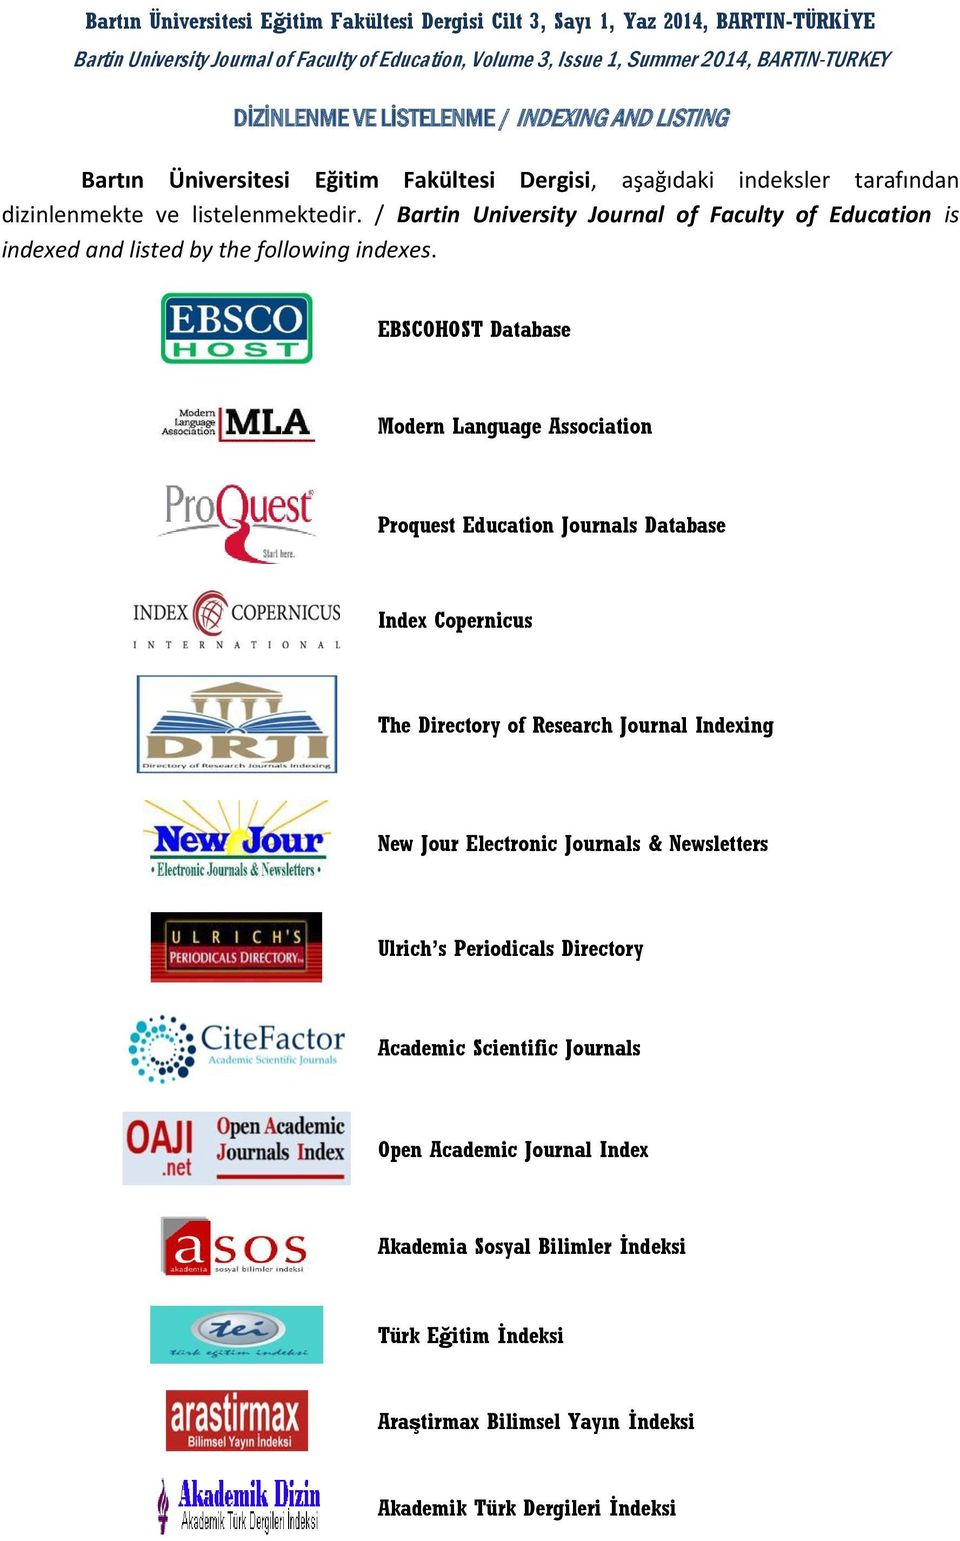 / Bartin University Journal of Faculty of Education is indexed and listed by the following indexes.